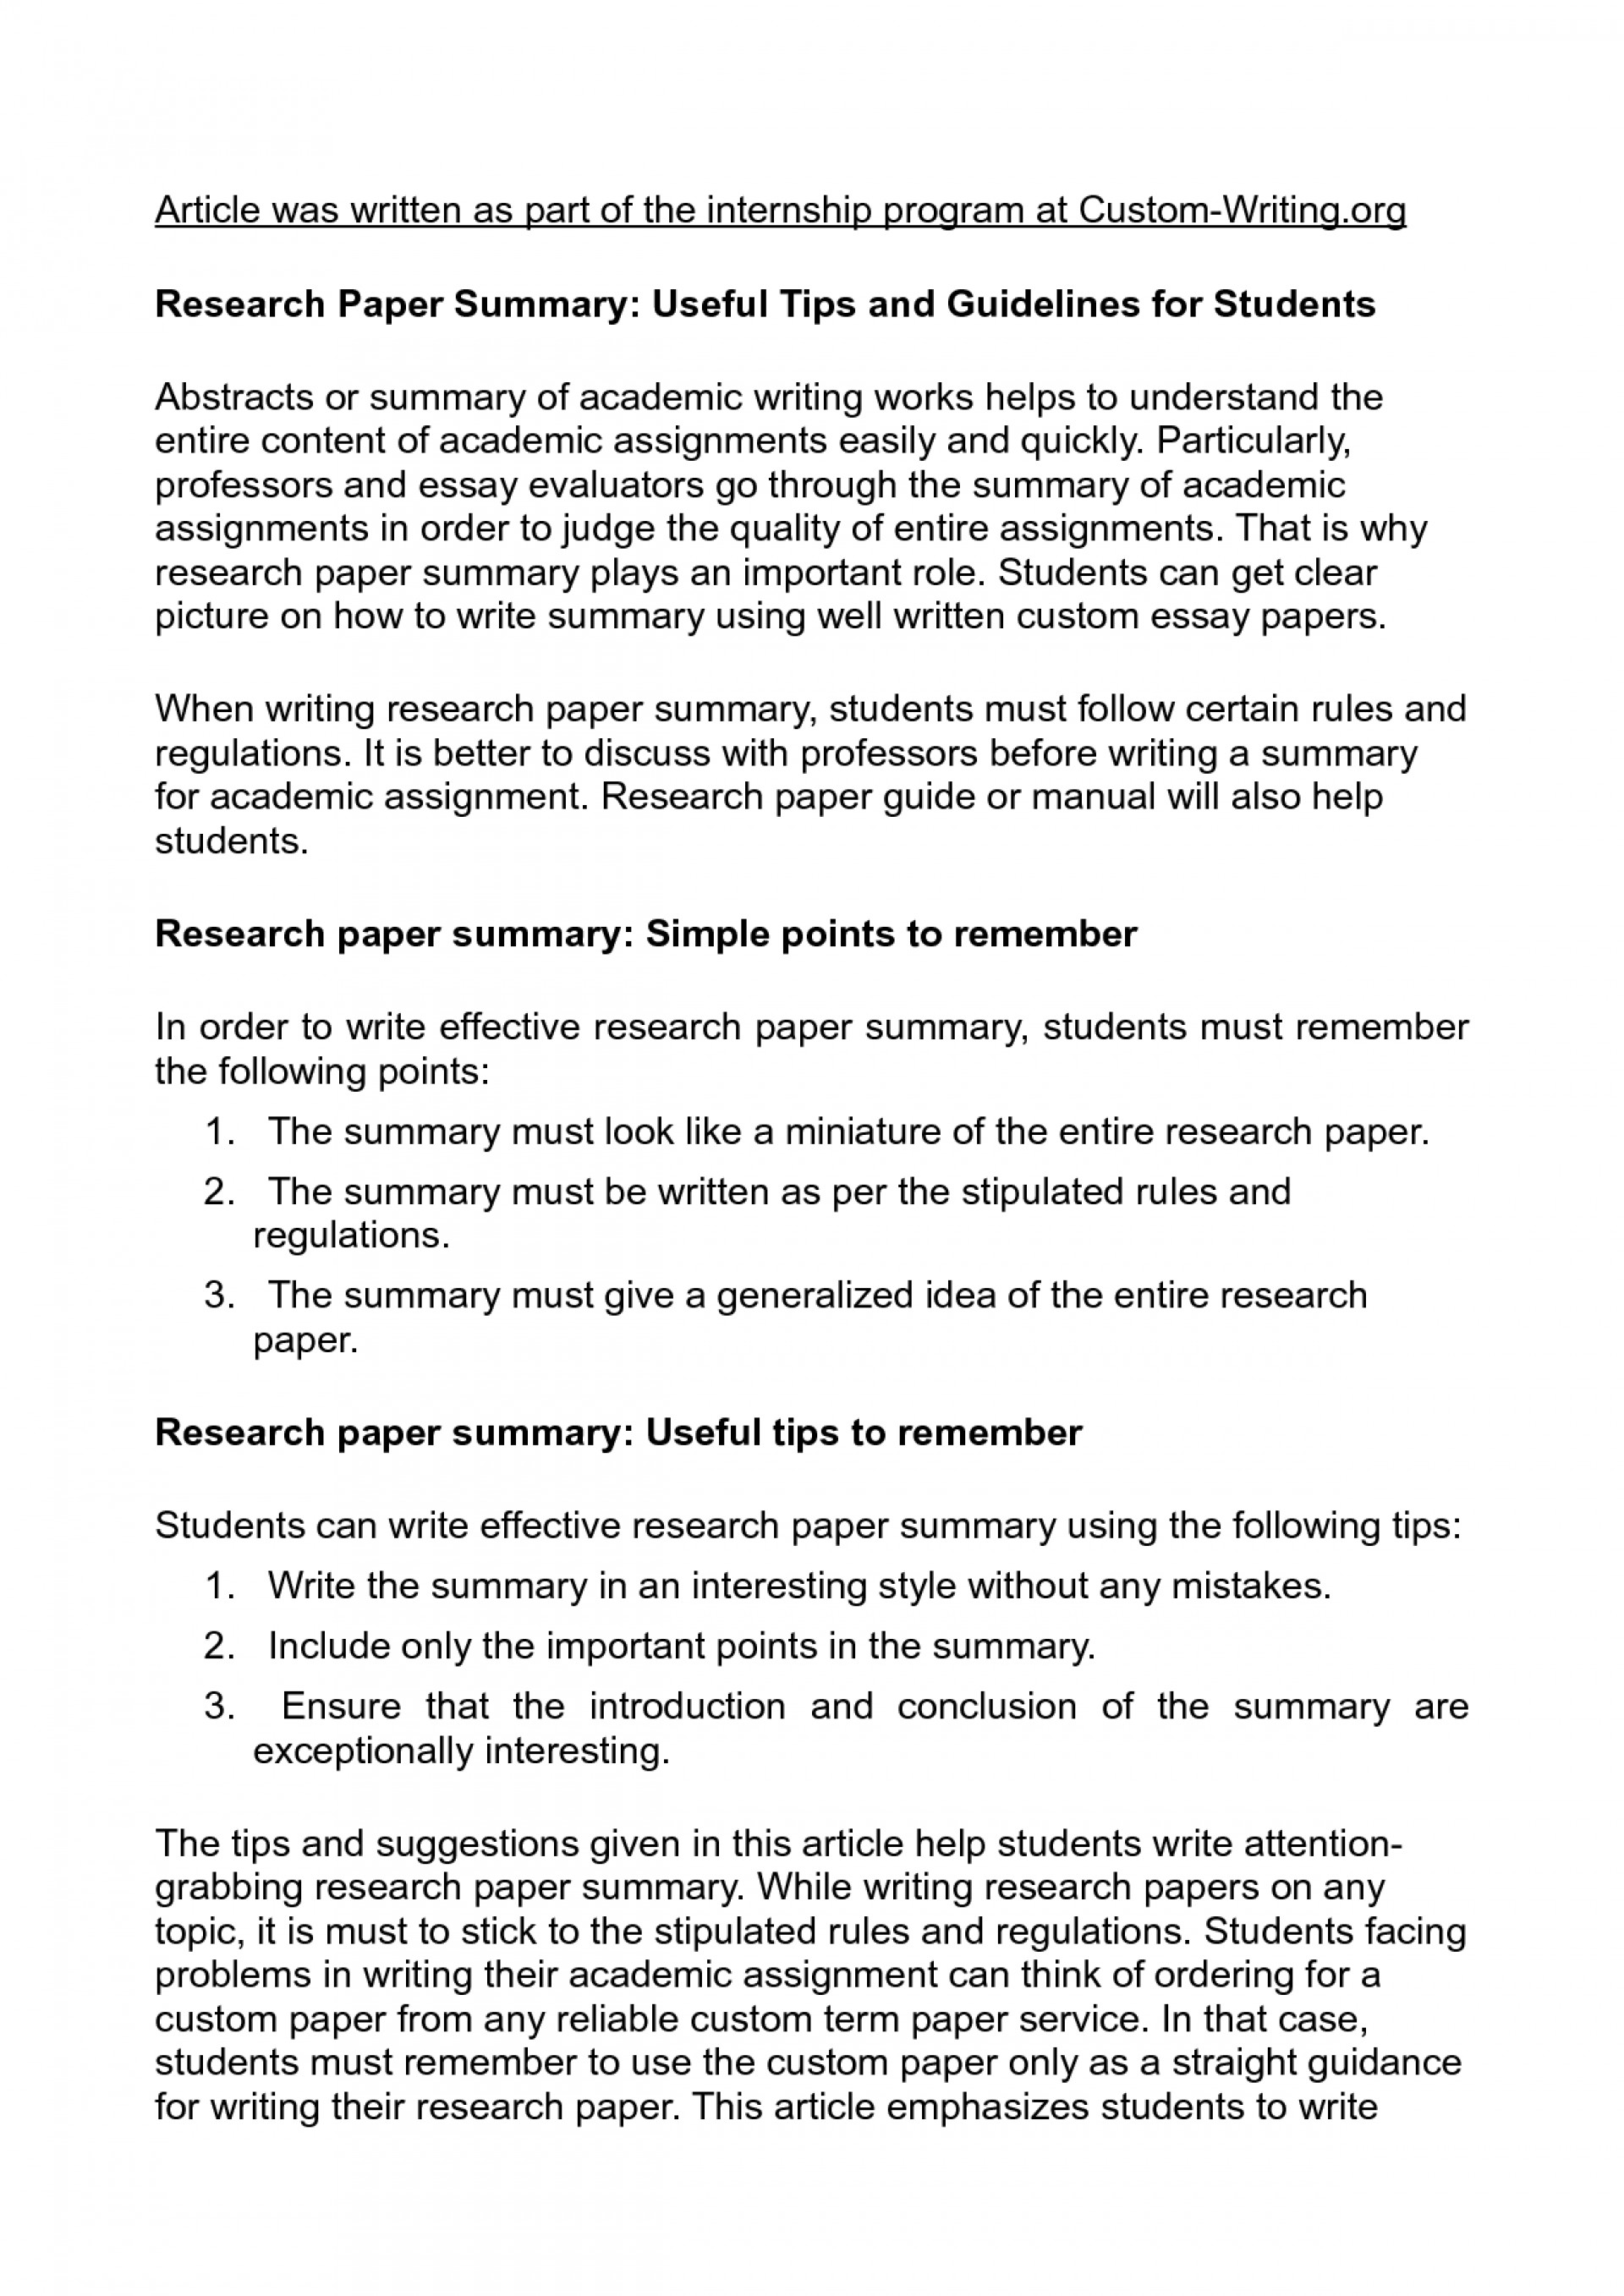 006 Essay Example Adhd Research Papers Brain Scan College About Writing Paper Summary 5 Impressive Introduction Thesis Statement 1920